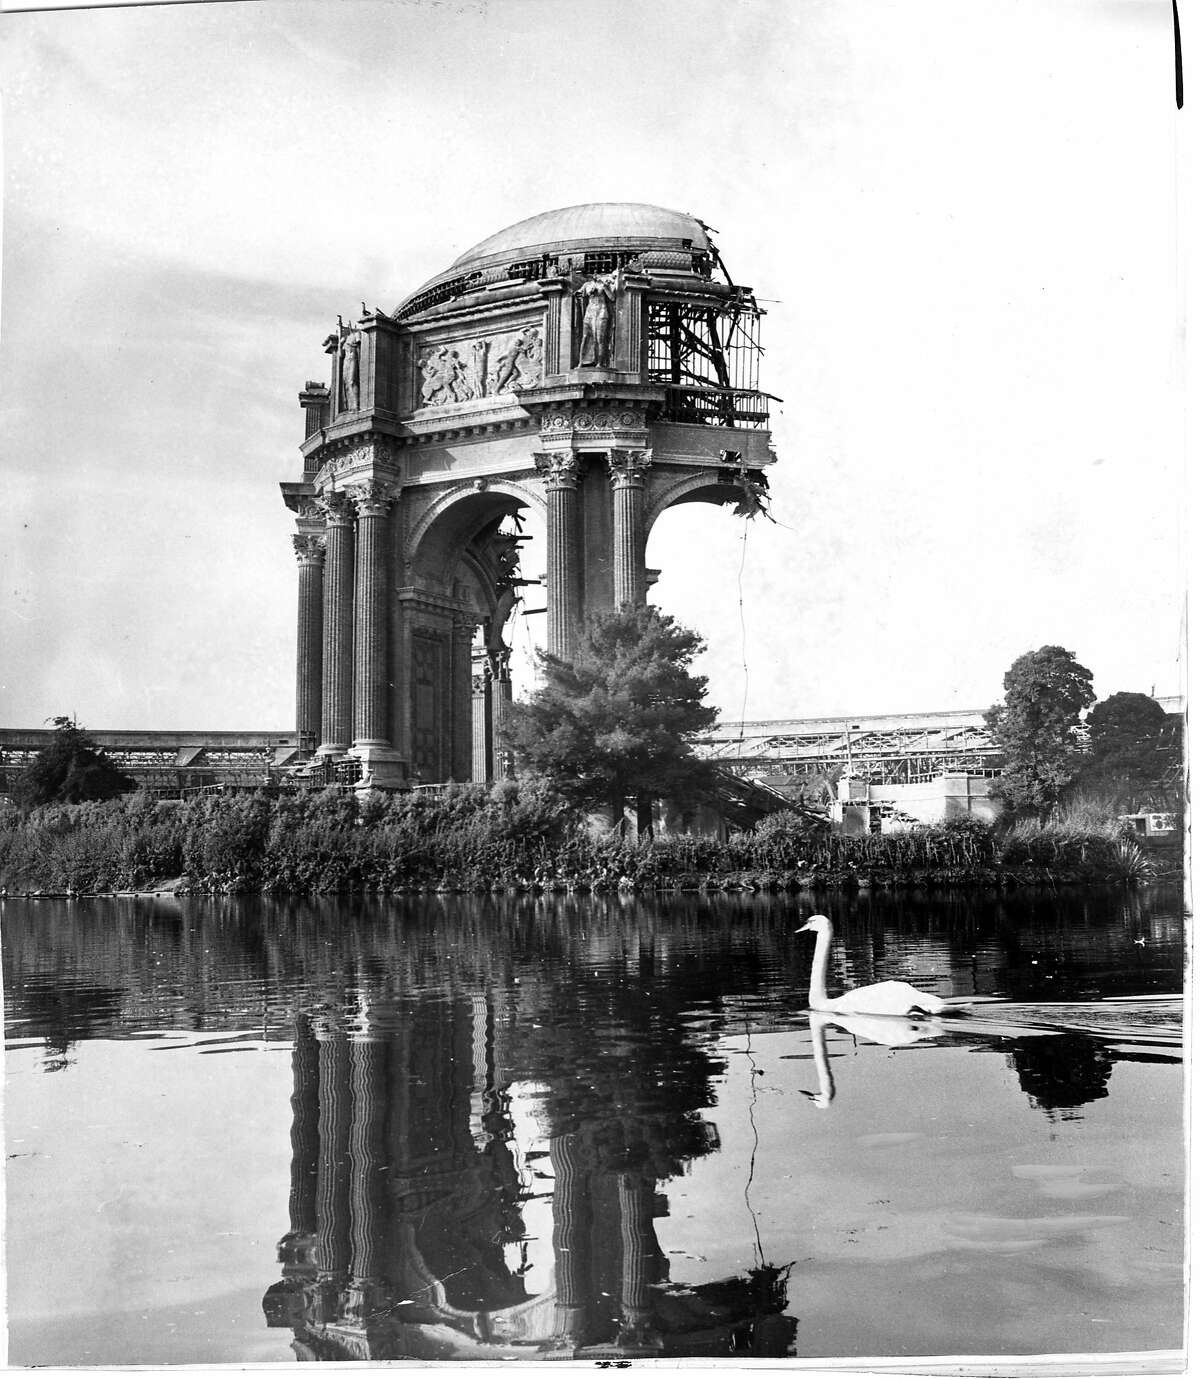 The Palace of Fine Arts was not meant to be a permanent structure when it was built for the 1915 Panama-Pacific Exposition, but when the city decided to keep it long-term, it needed to be partially reconstructed with new materials, as seen here in this October 1964 photo. The Chronicle's Bill Van Niekerken recently reportedthe full story on the challenges of saving the structure.